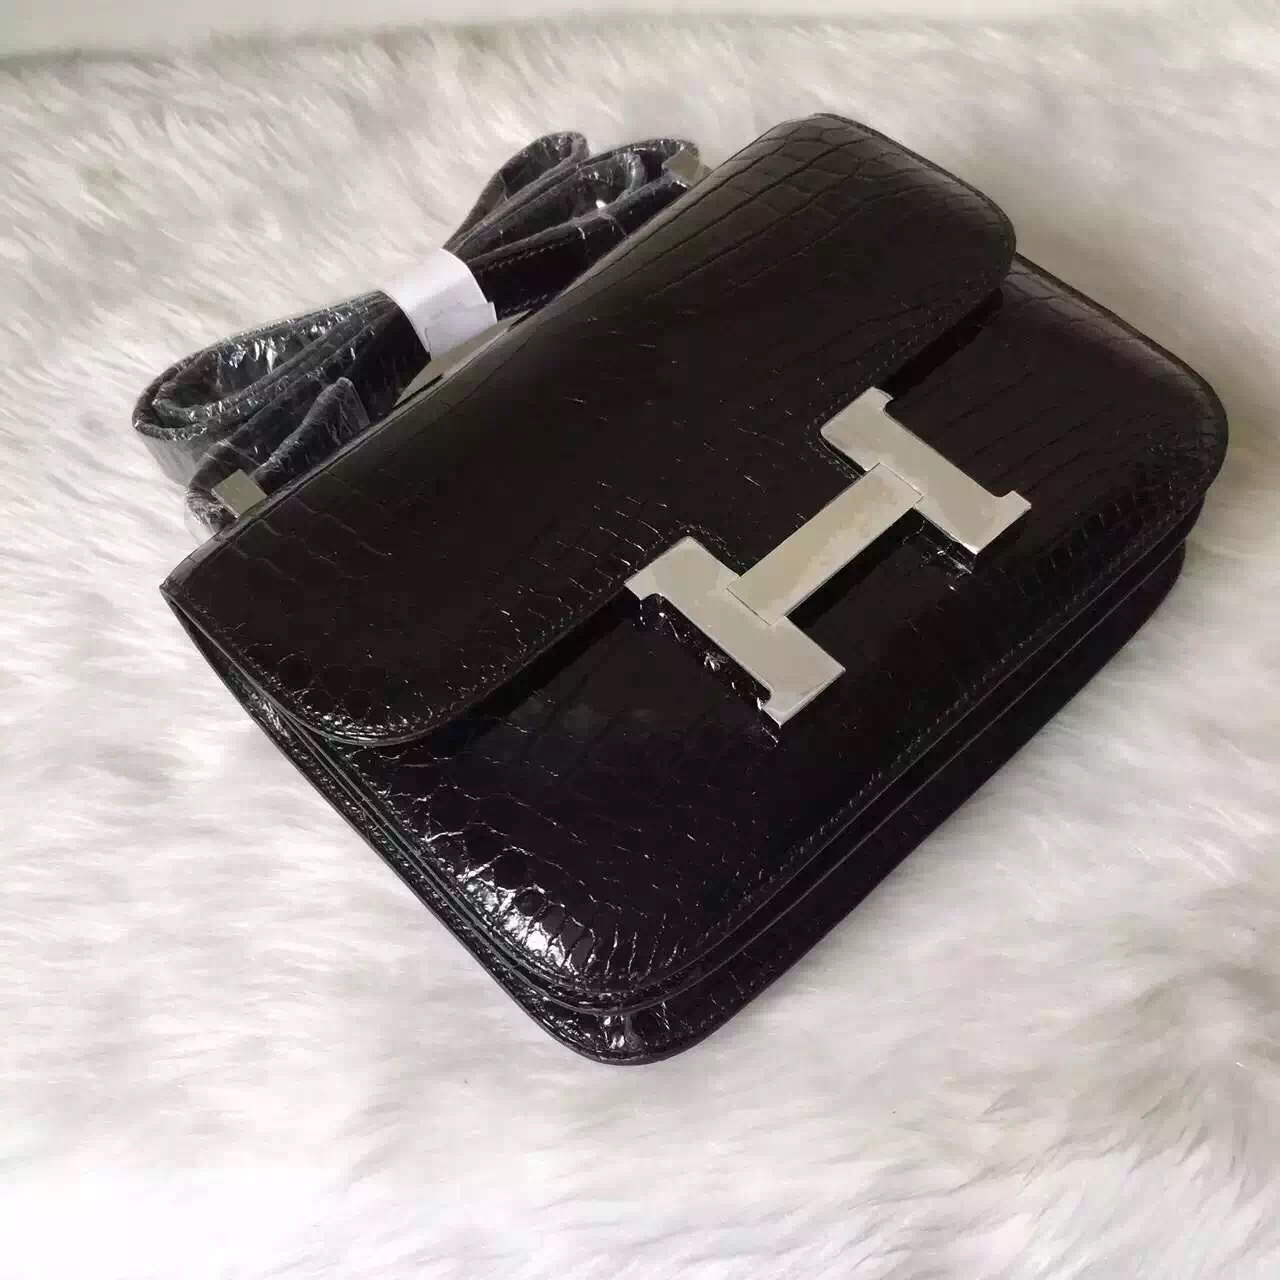 New Elegant Hermes CK89 Black Crocodile Leather Constance Bag24CM